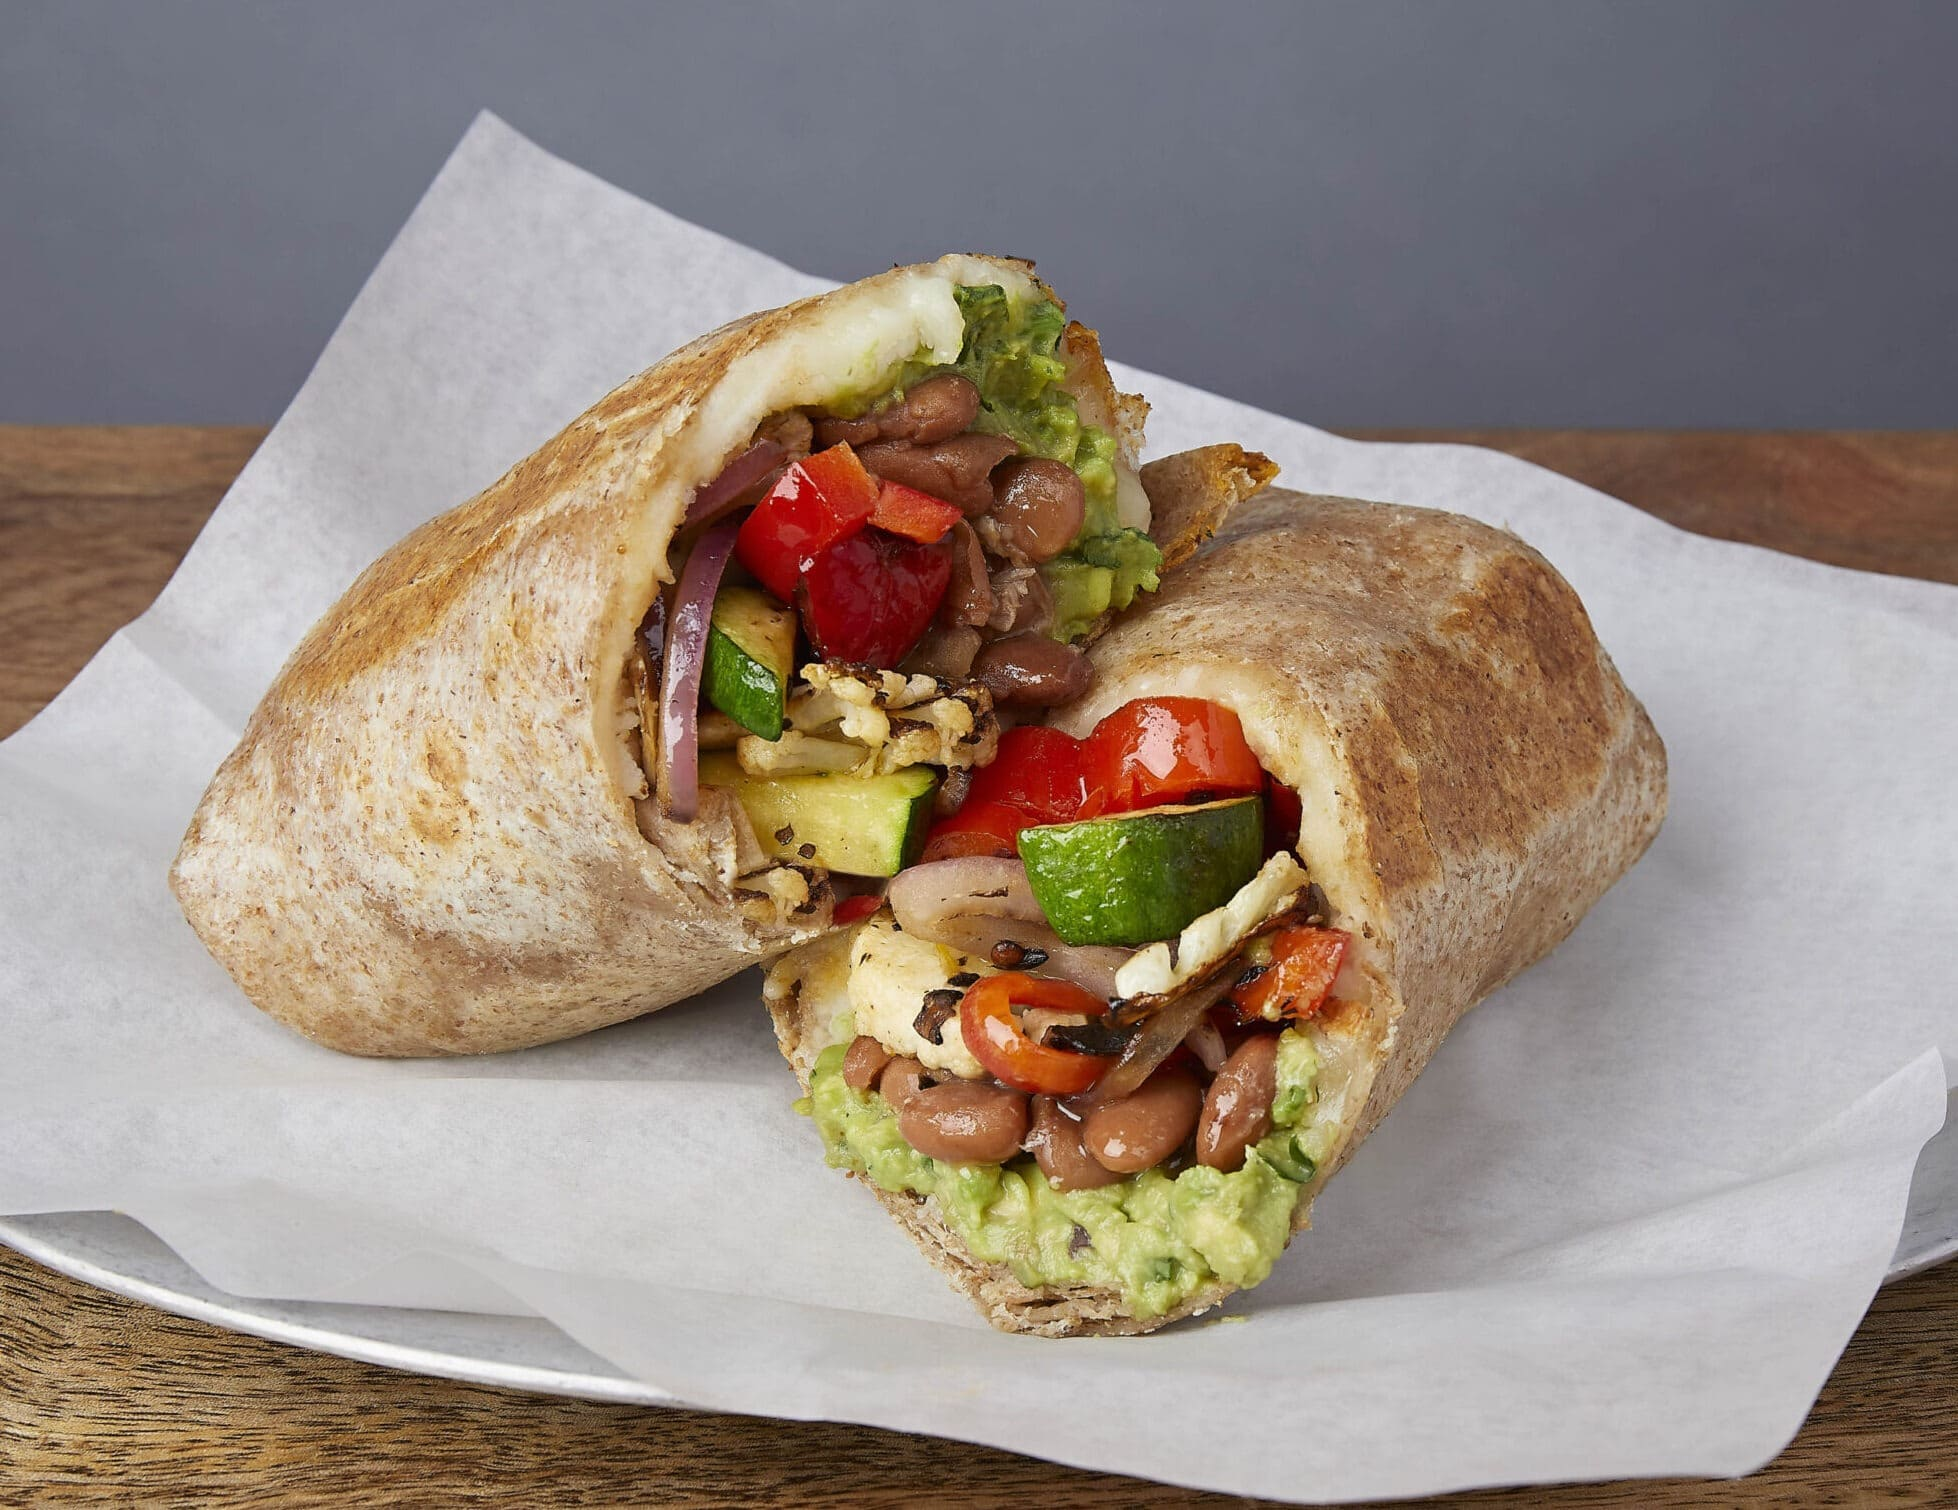 Image of a grilled veggie burrito